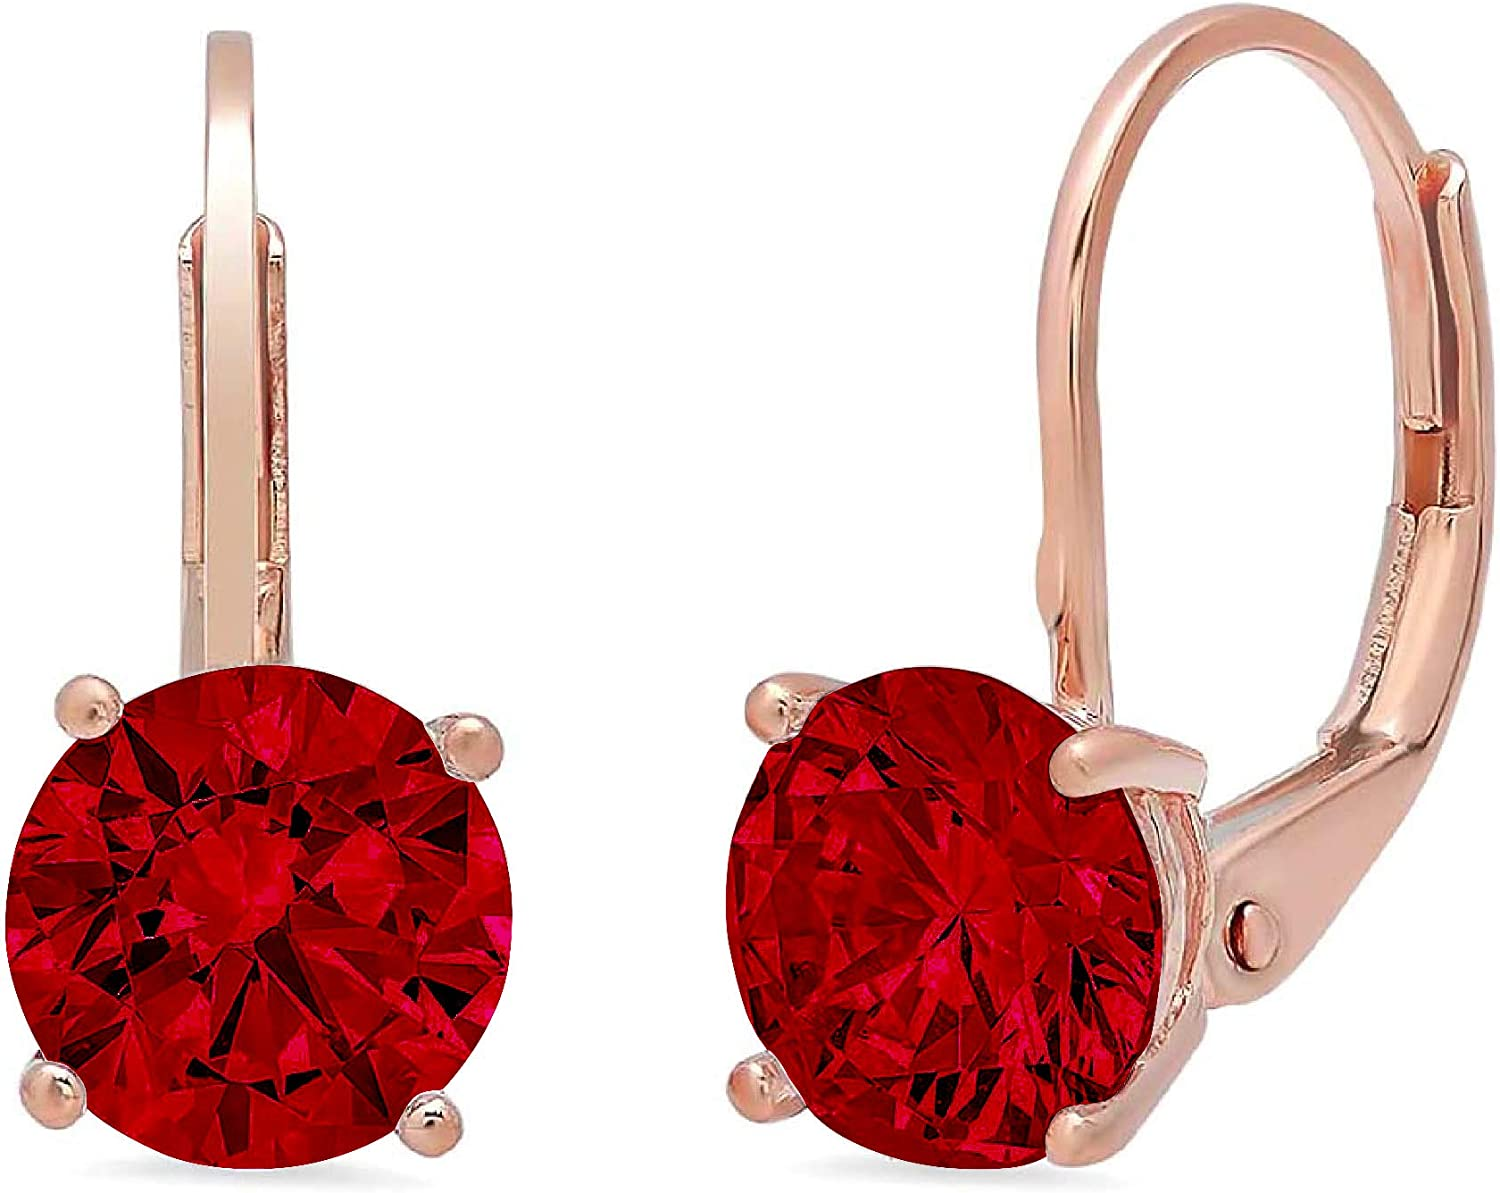 Clara Pucci 2.0 ct Brilliant Round Cut Solitaire VVS1 Fine Natural Red Garnet Gemstone Pair of Lever back Drop Dangle Earrings Solid 18K Rose Gold